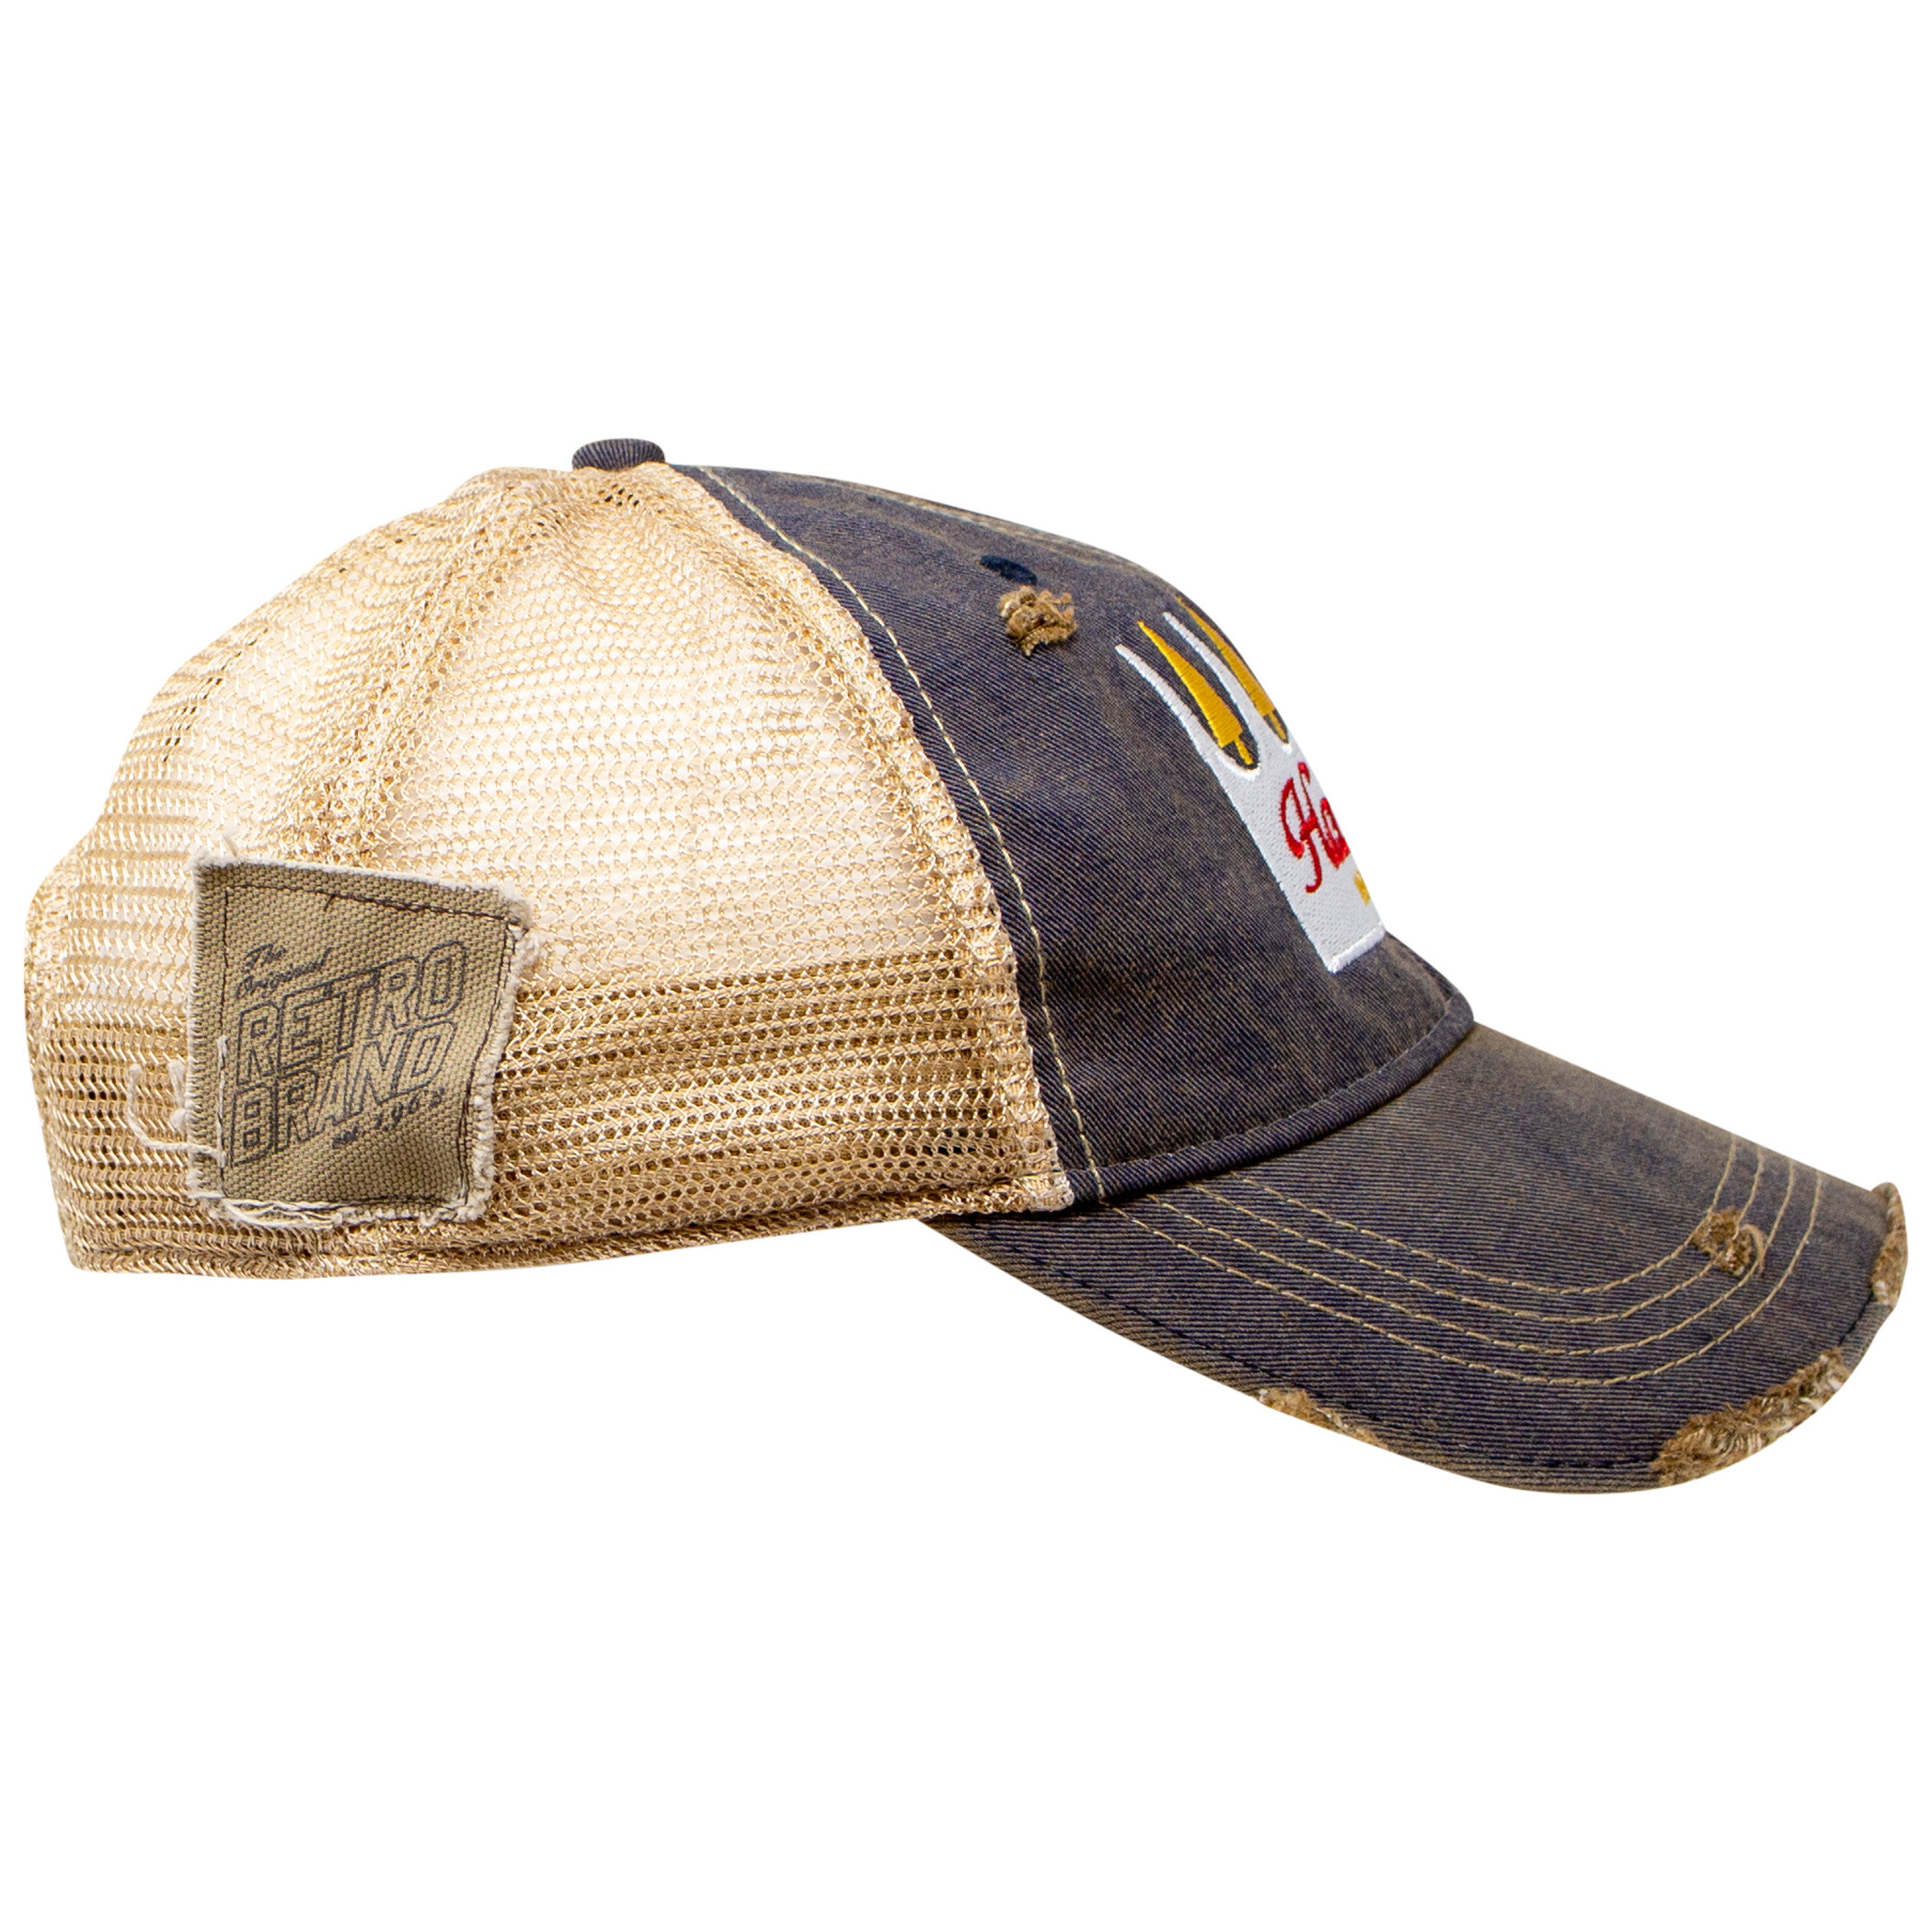 Hamm's Beer Weathered Adjustable Mesh Trucker Hat